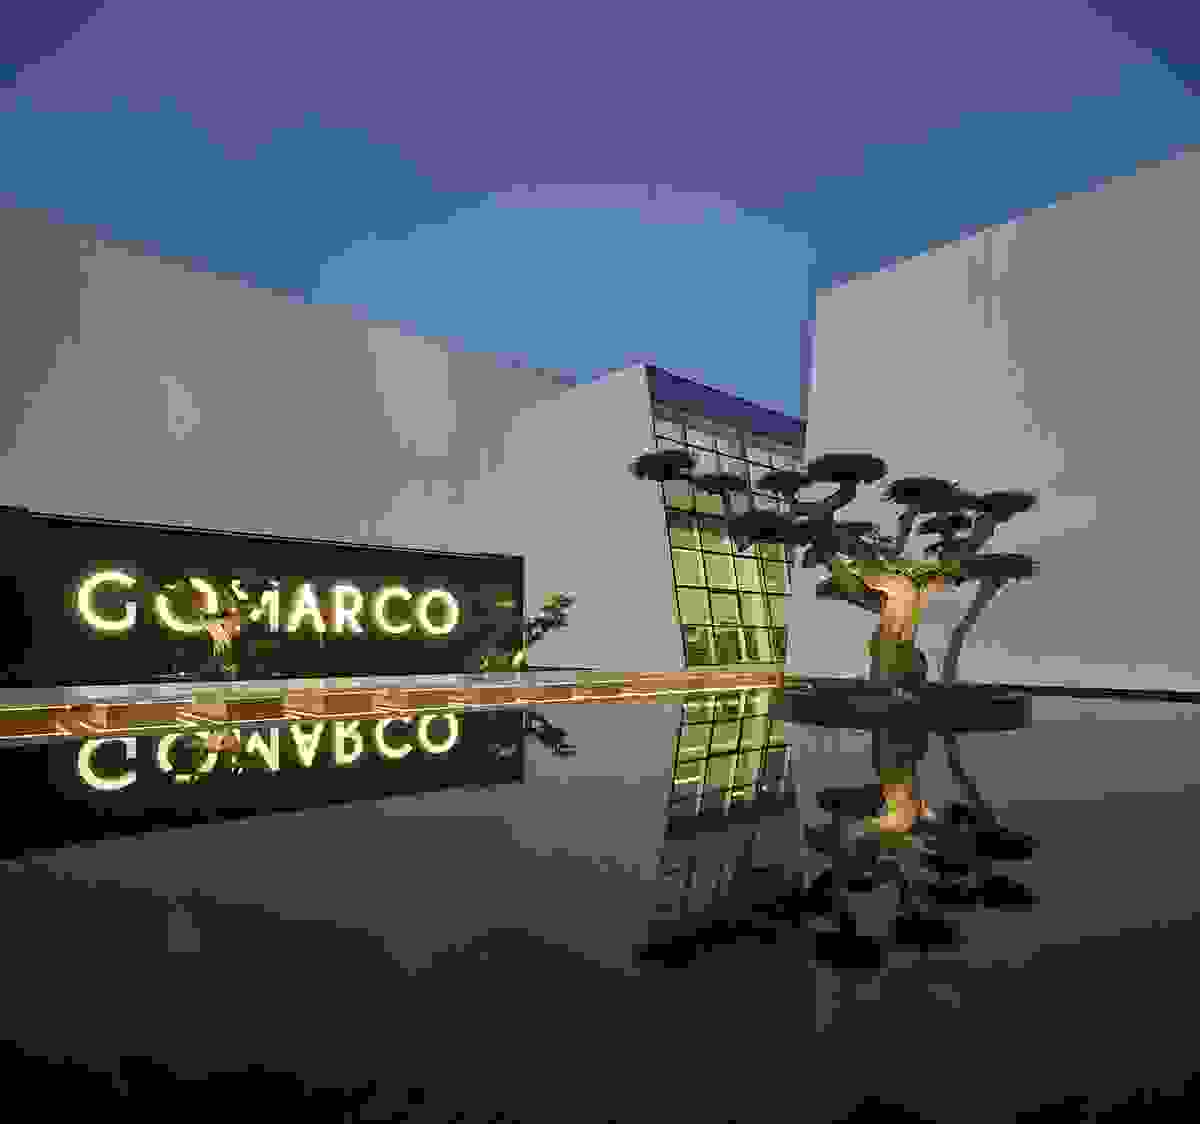 gomarco-headquarters.jpg